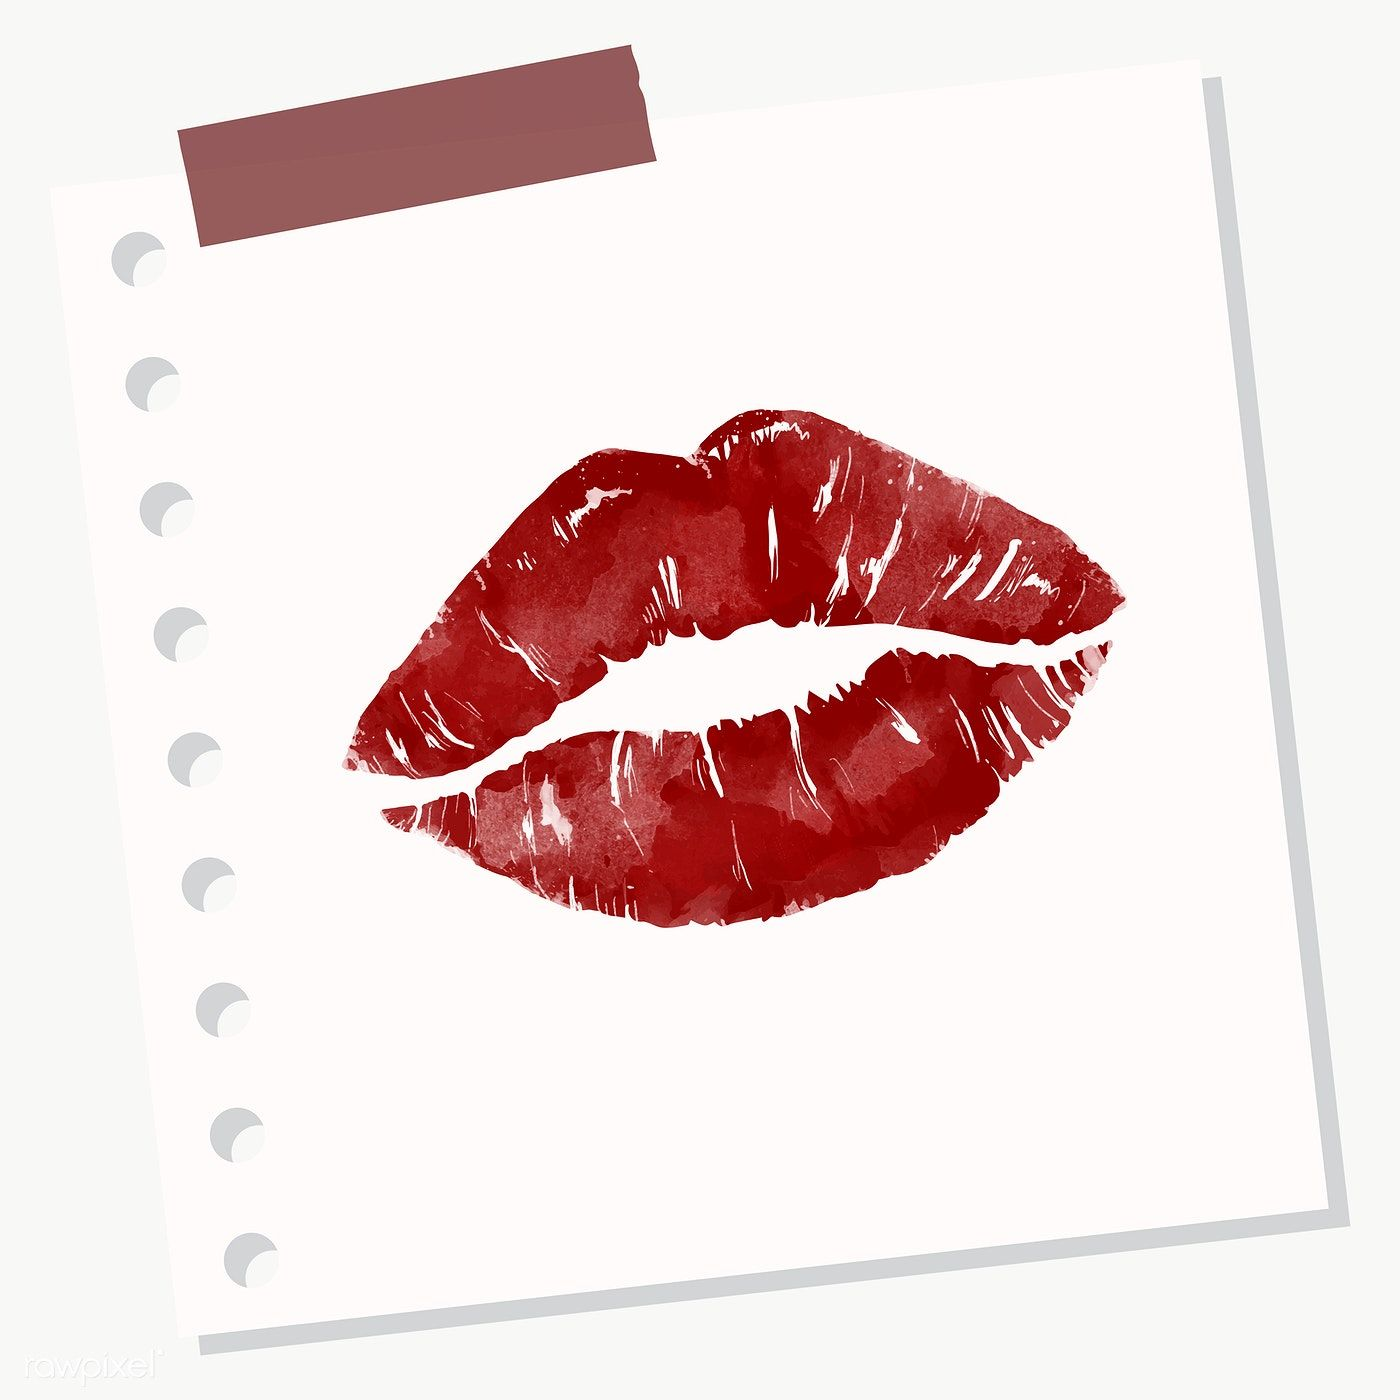 Download Premium Png Of Red Lipstick Kiss On Notepaper Transparent